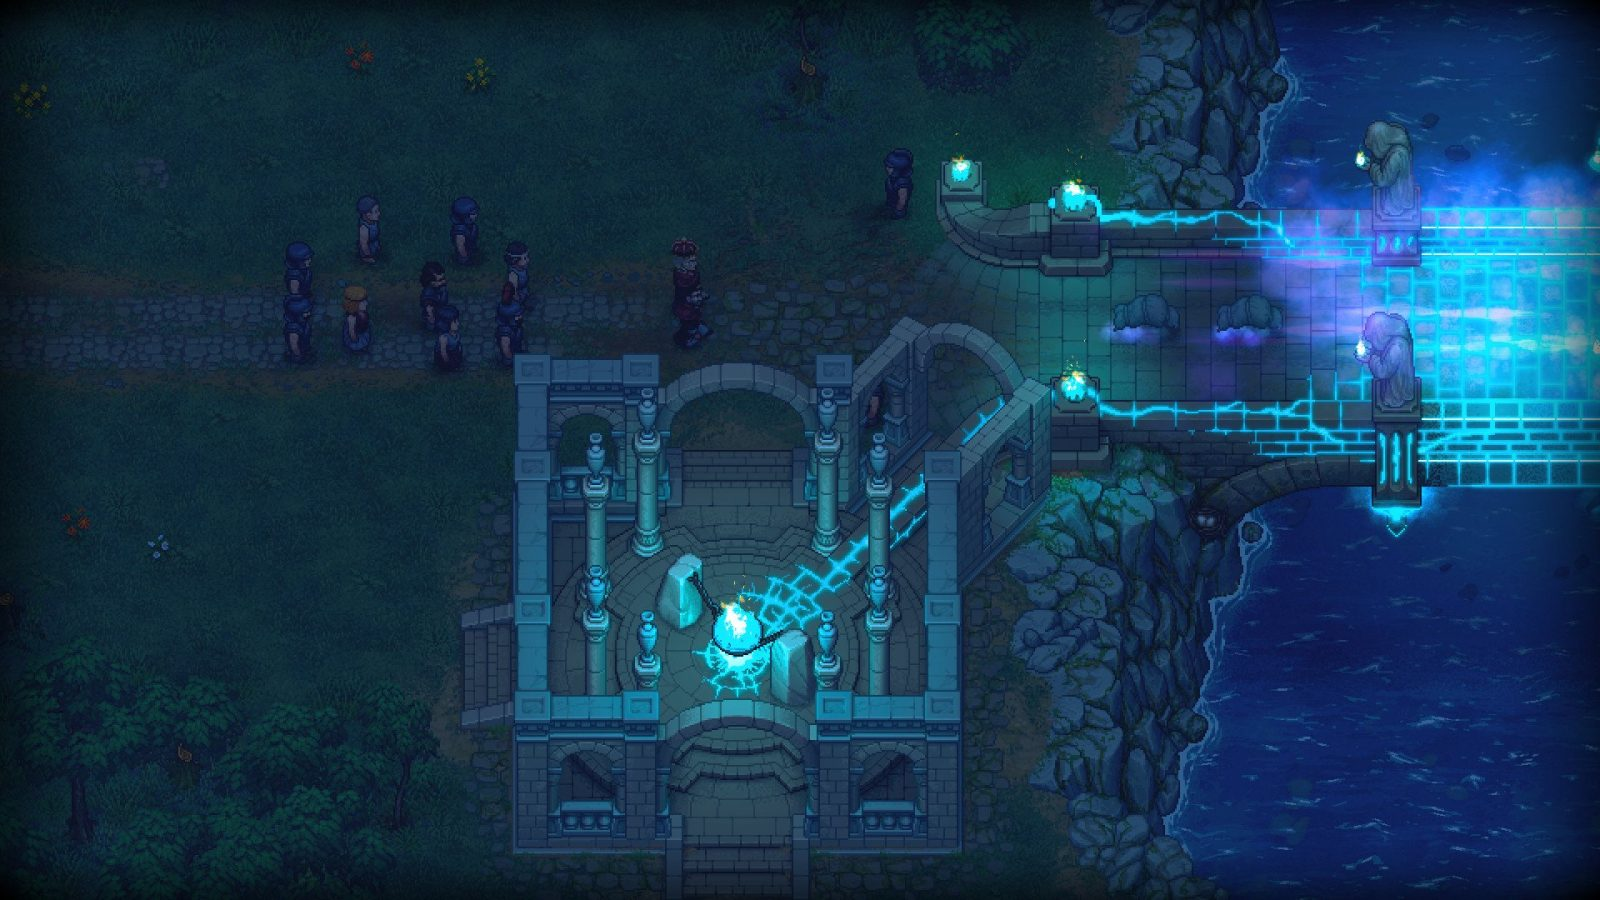 Build A Tavern And Uncover History In Graveyard Keeper's Stranger Sins DLC